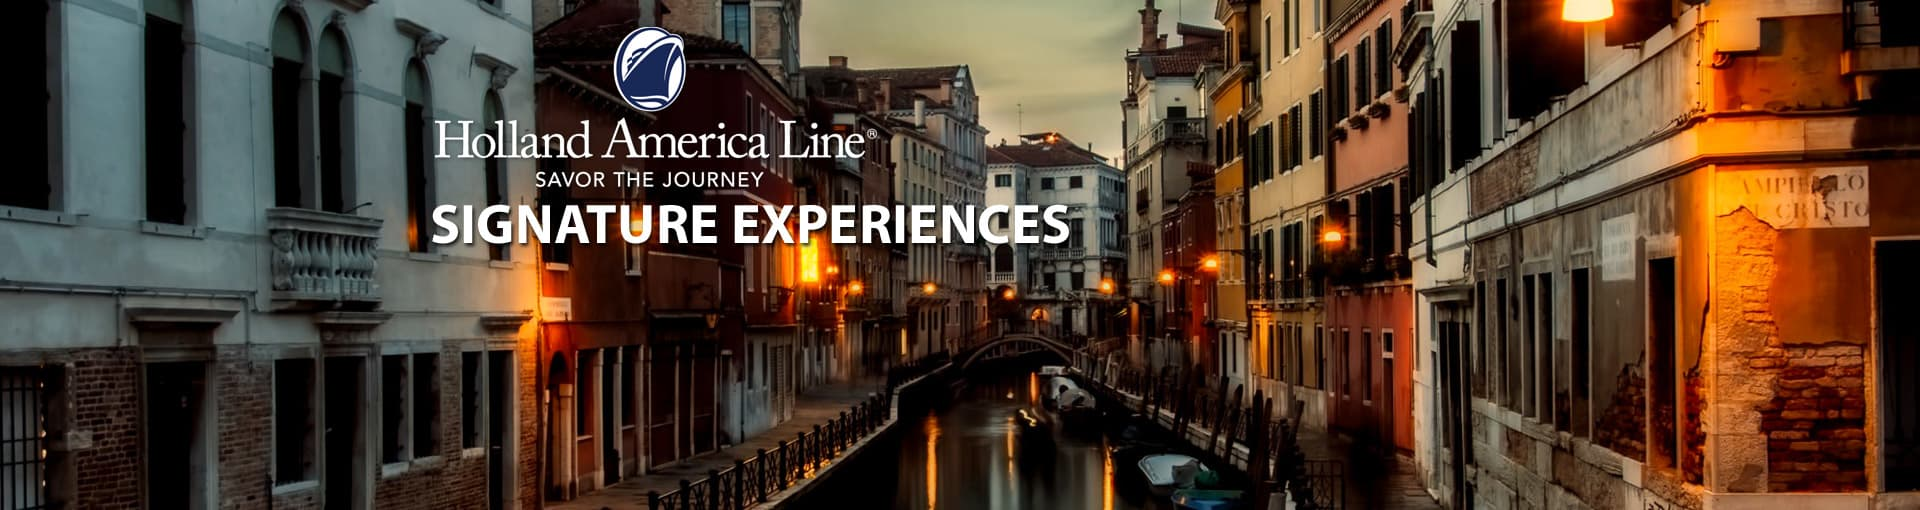 Holland America Signature Experiences